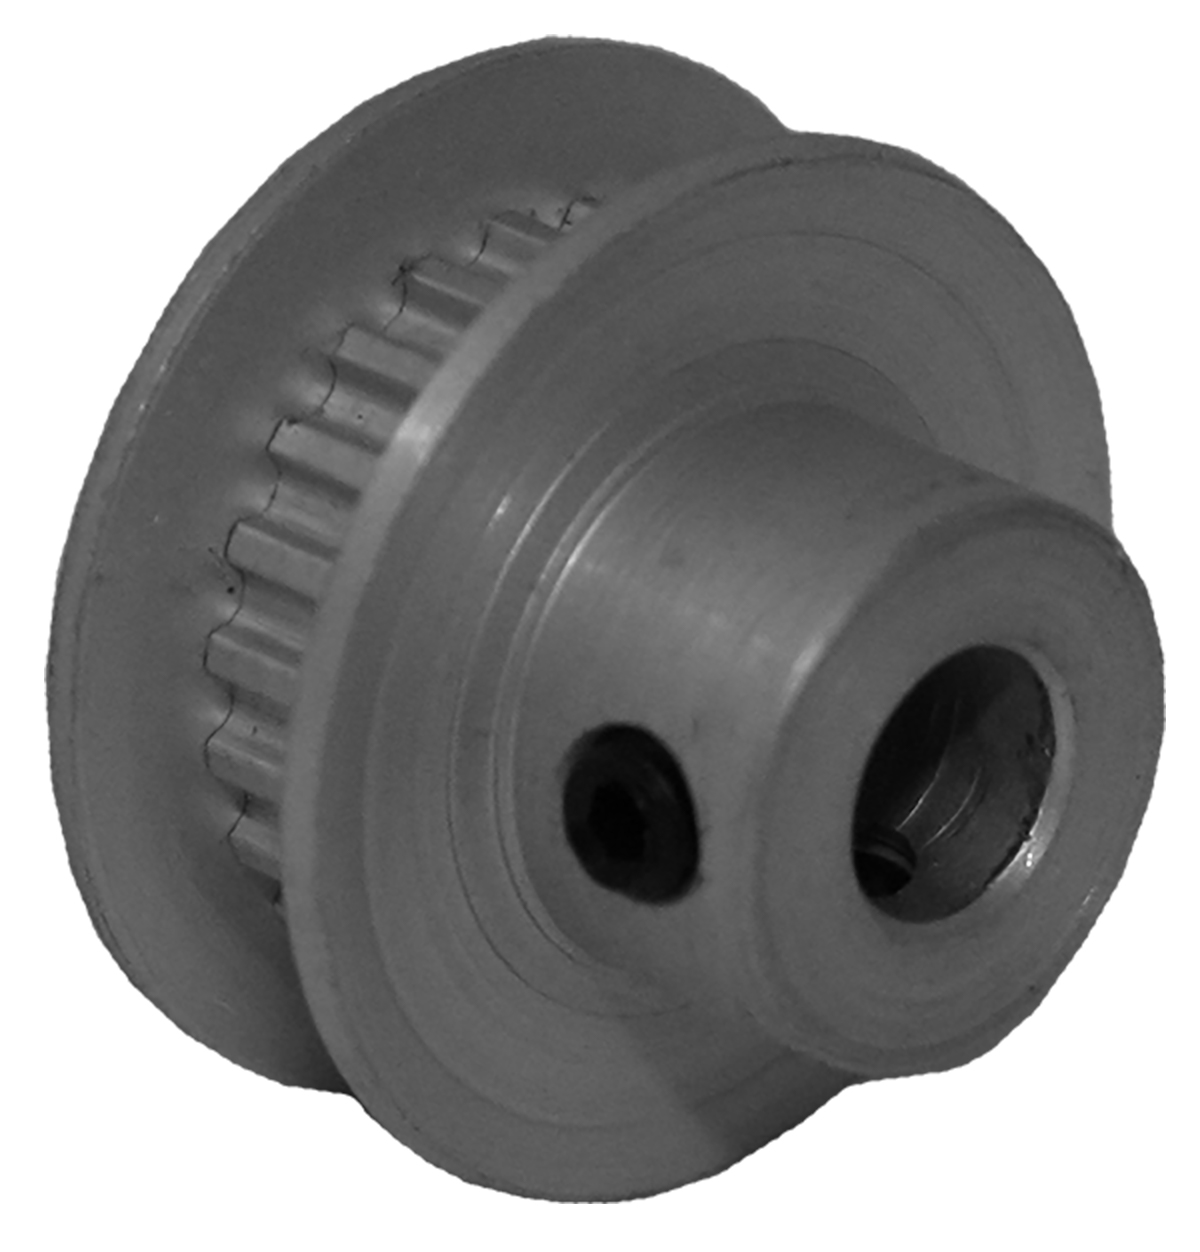 22MP012-6FA2 - Aluminum Imperial Pitch Pulleys